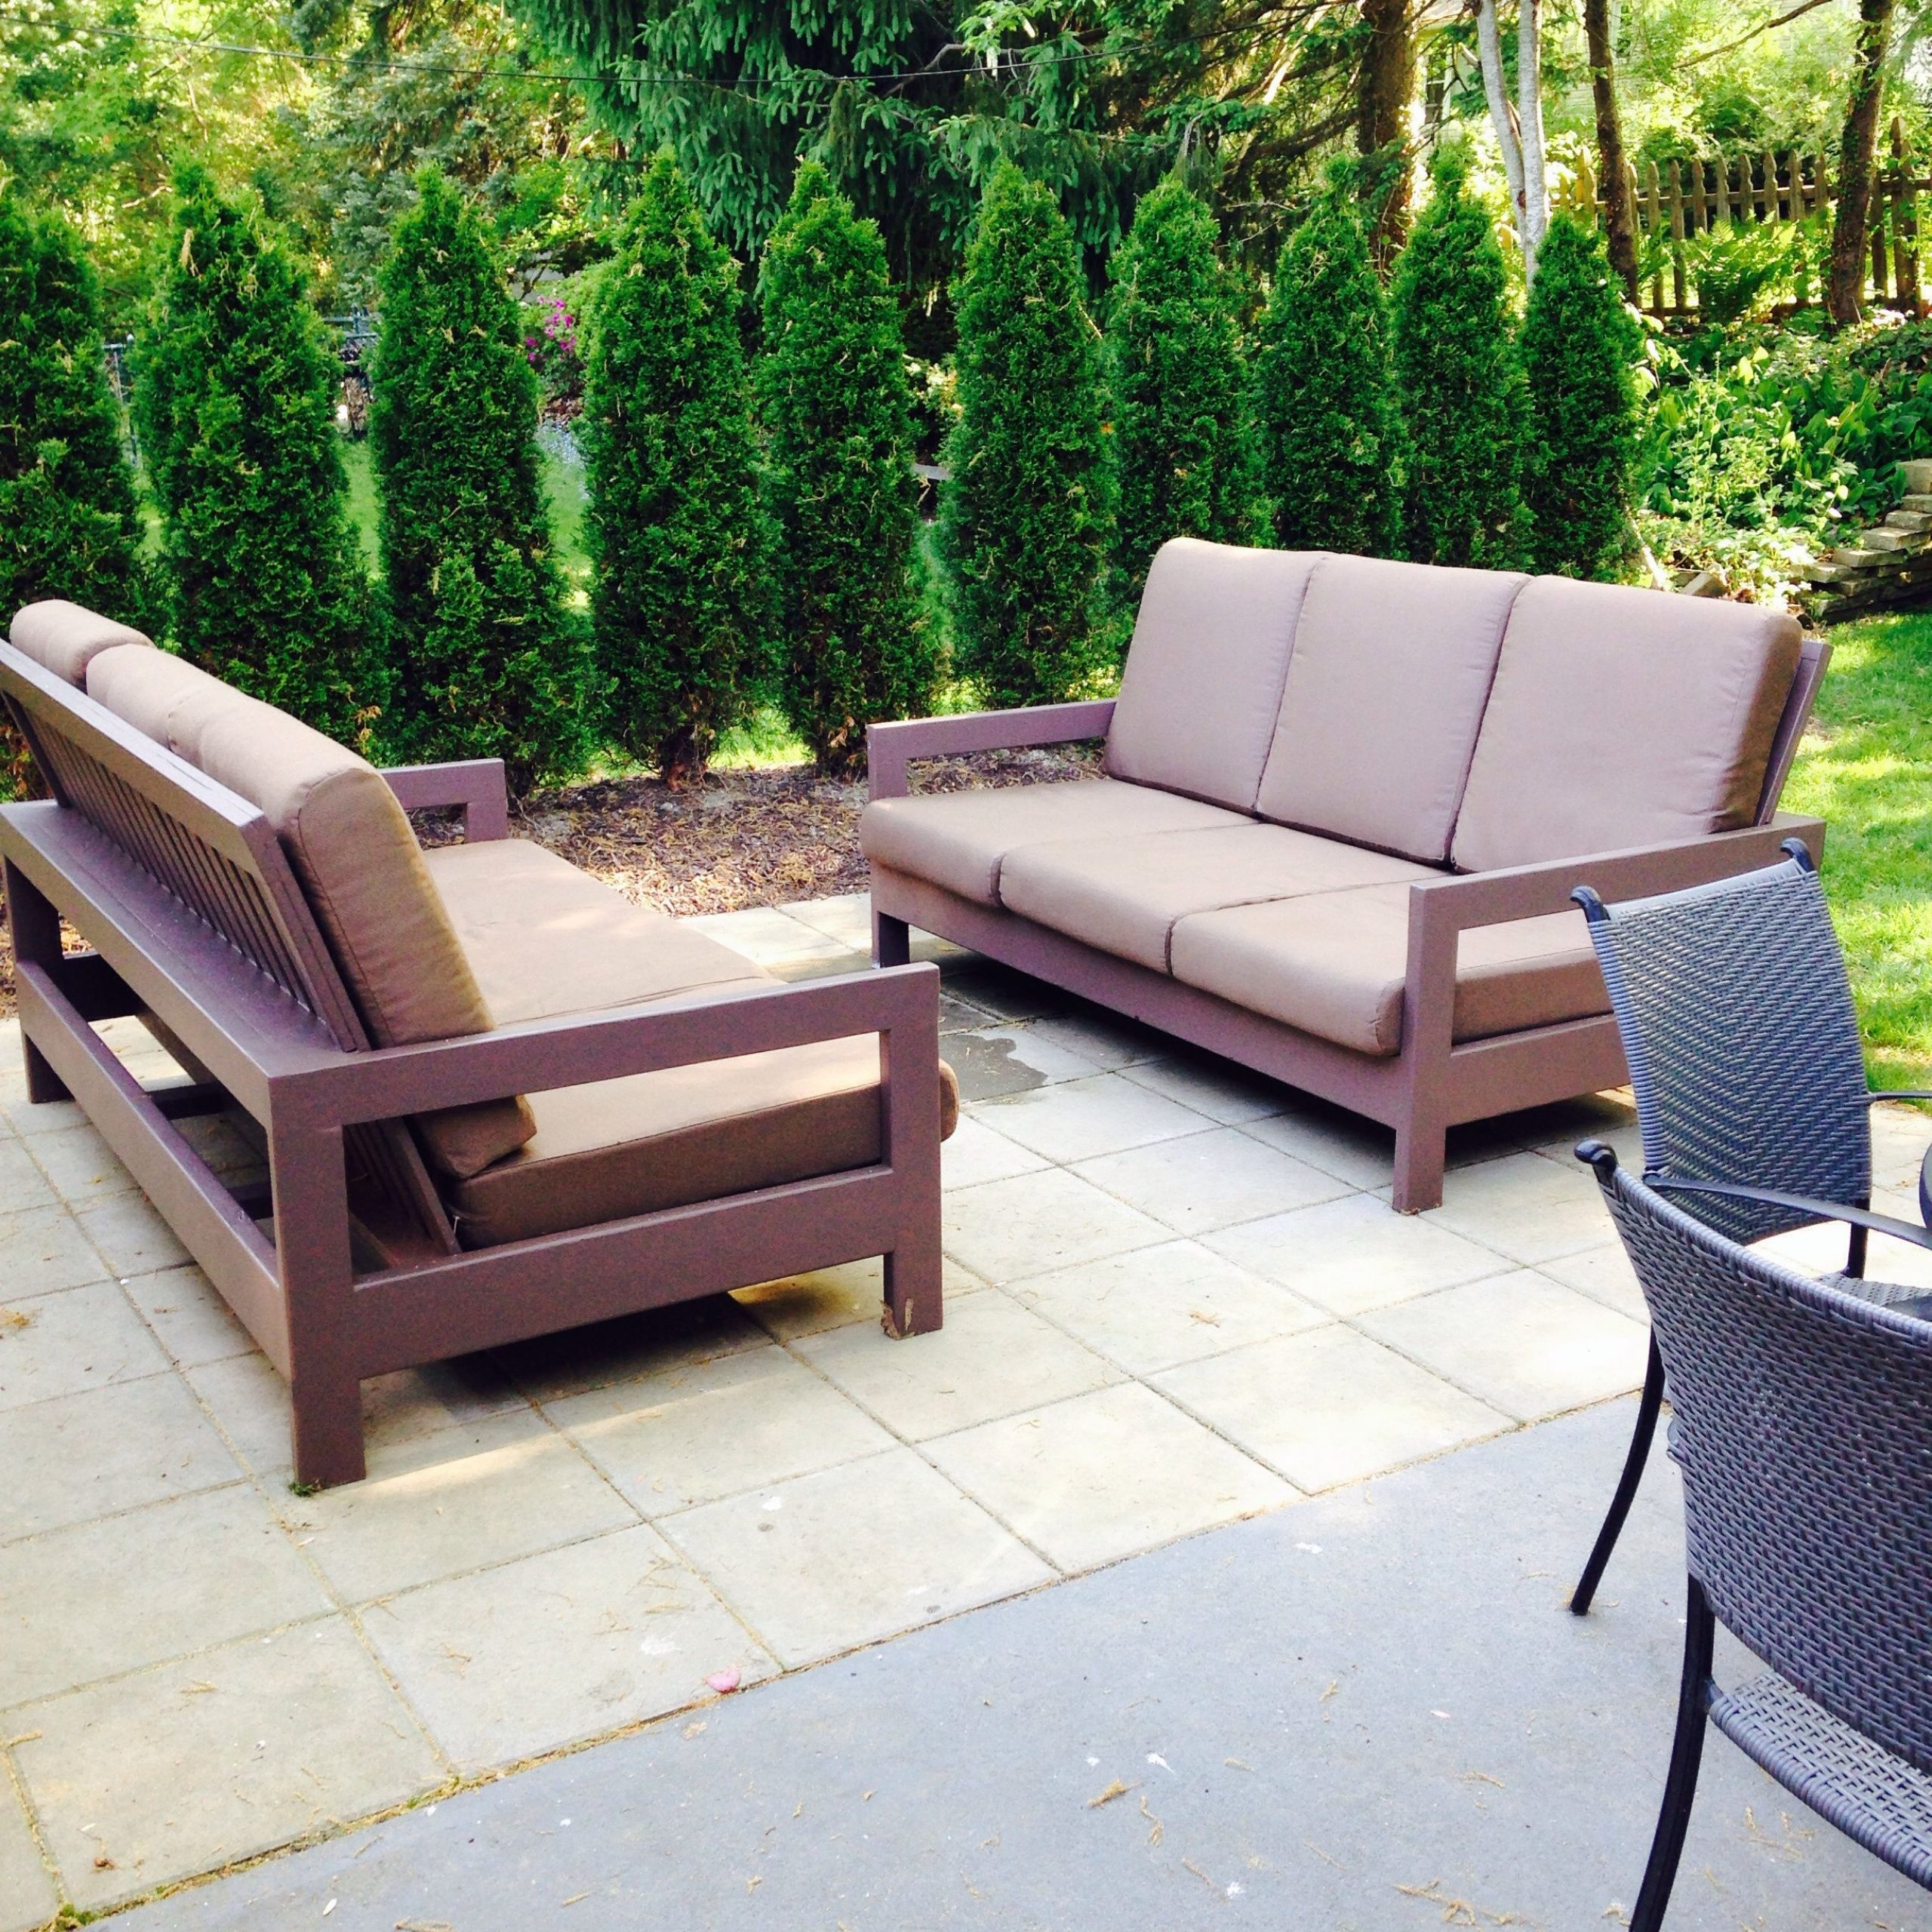 O'kean Teak Patio Sofas With Cushions With Popular Outdoor Patio Couches (View 25 of 25)